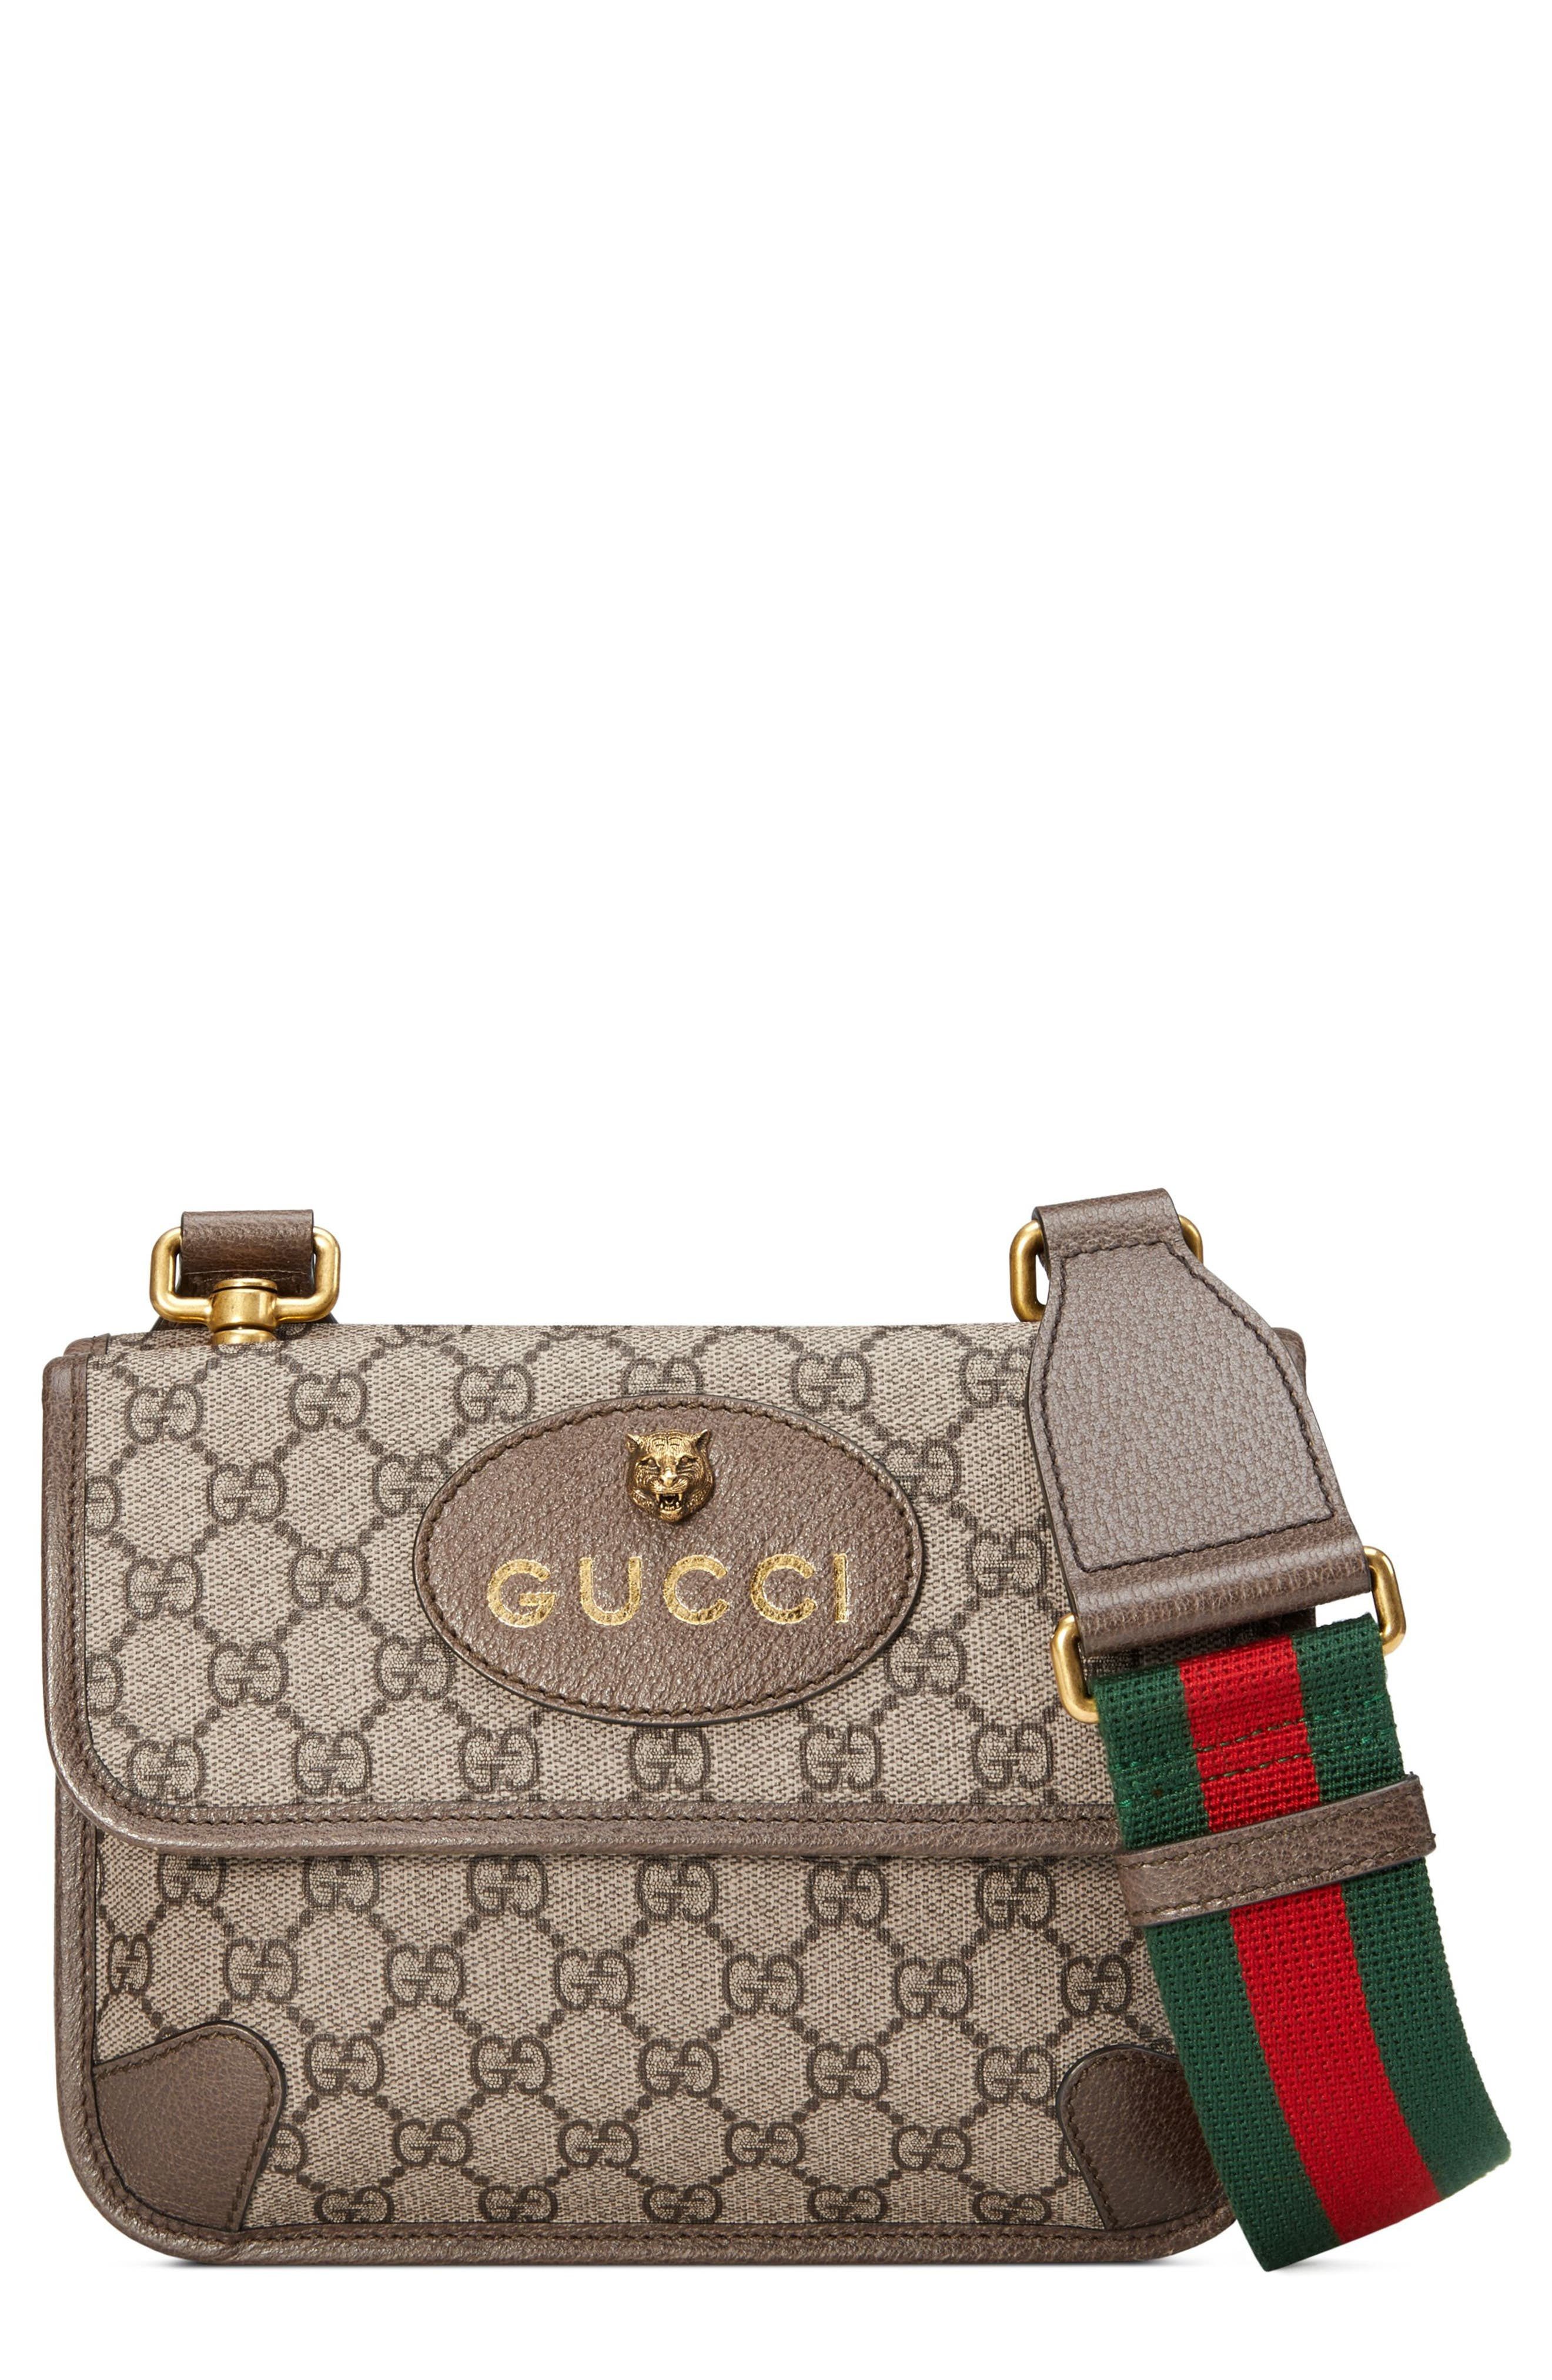 86f98590539c Gucci Small Gg Supreme Canvas Messenger Bag - Beige In Beige Ebony/ New  Acero. Nordstrom